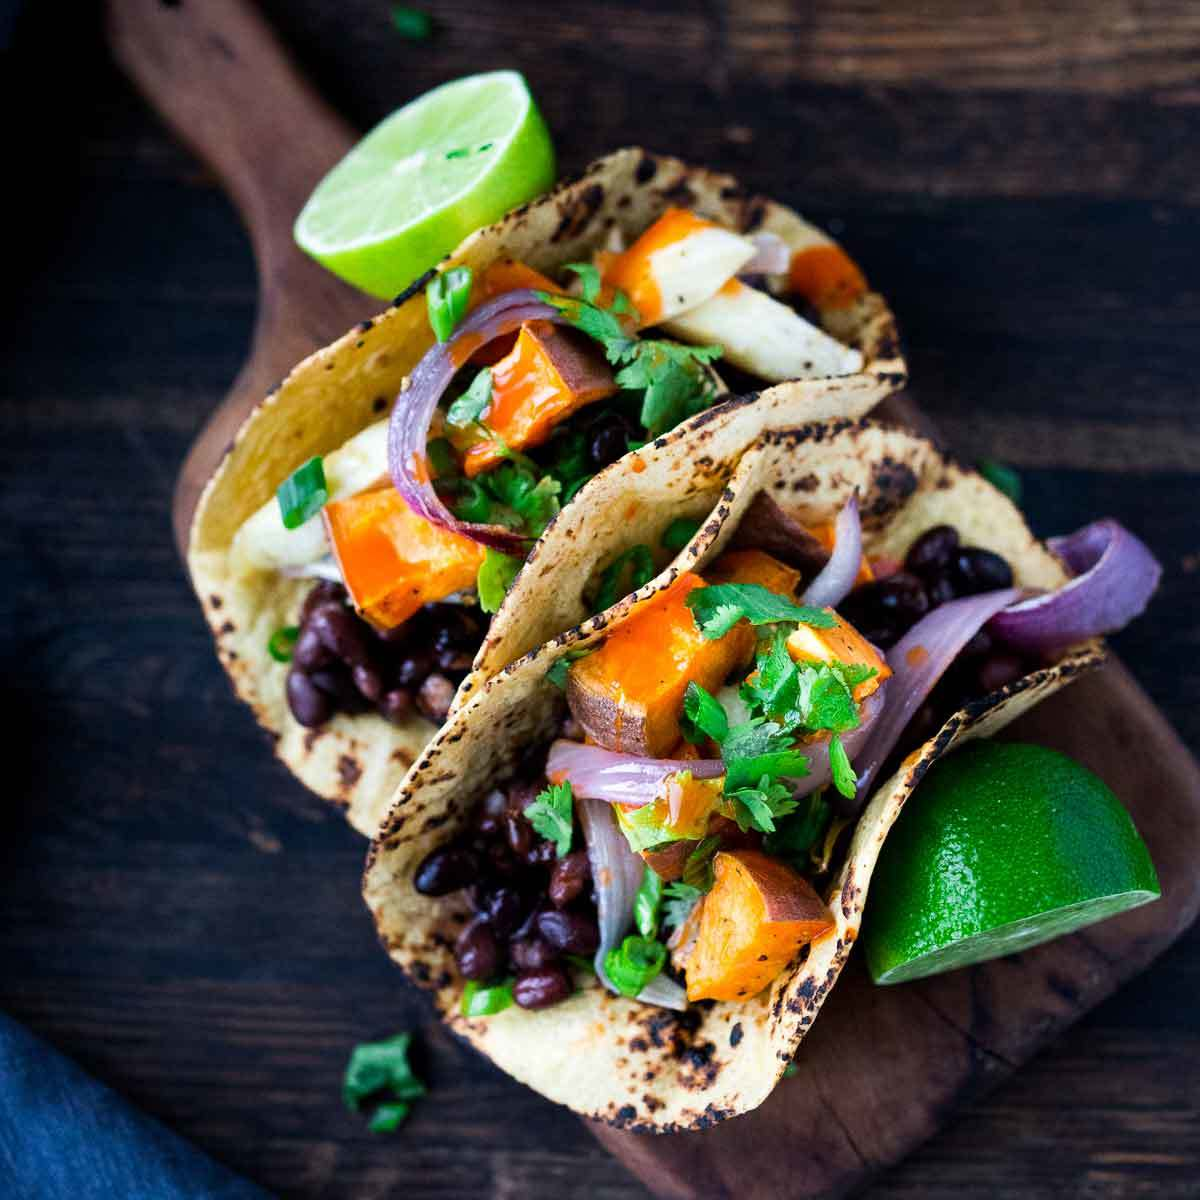 These hearty vegan tacos are quick and easy to make, perfect for busy weeknights. They are so tasty no one will miss the meat or dairy. Source: EatingWell.com, April 2017